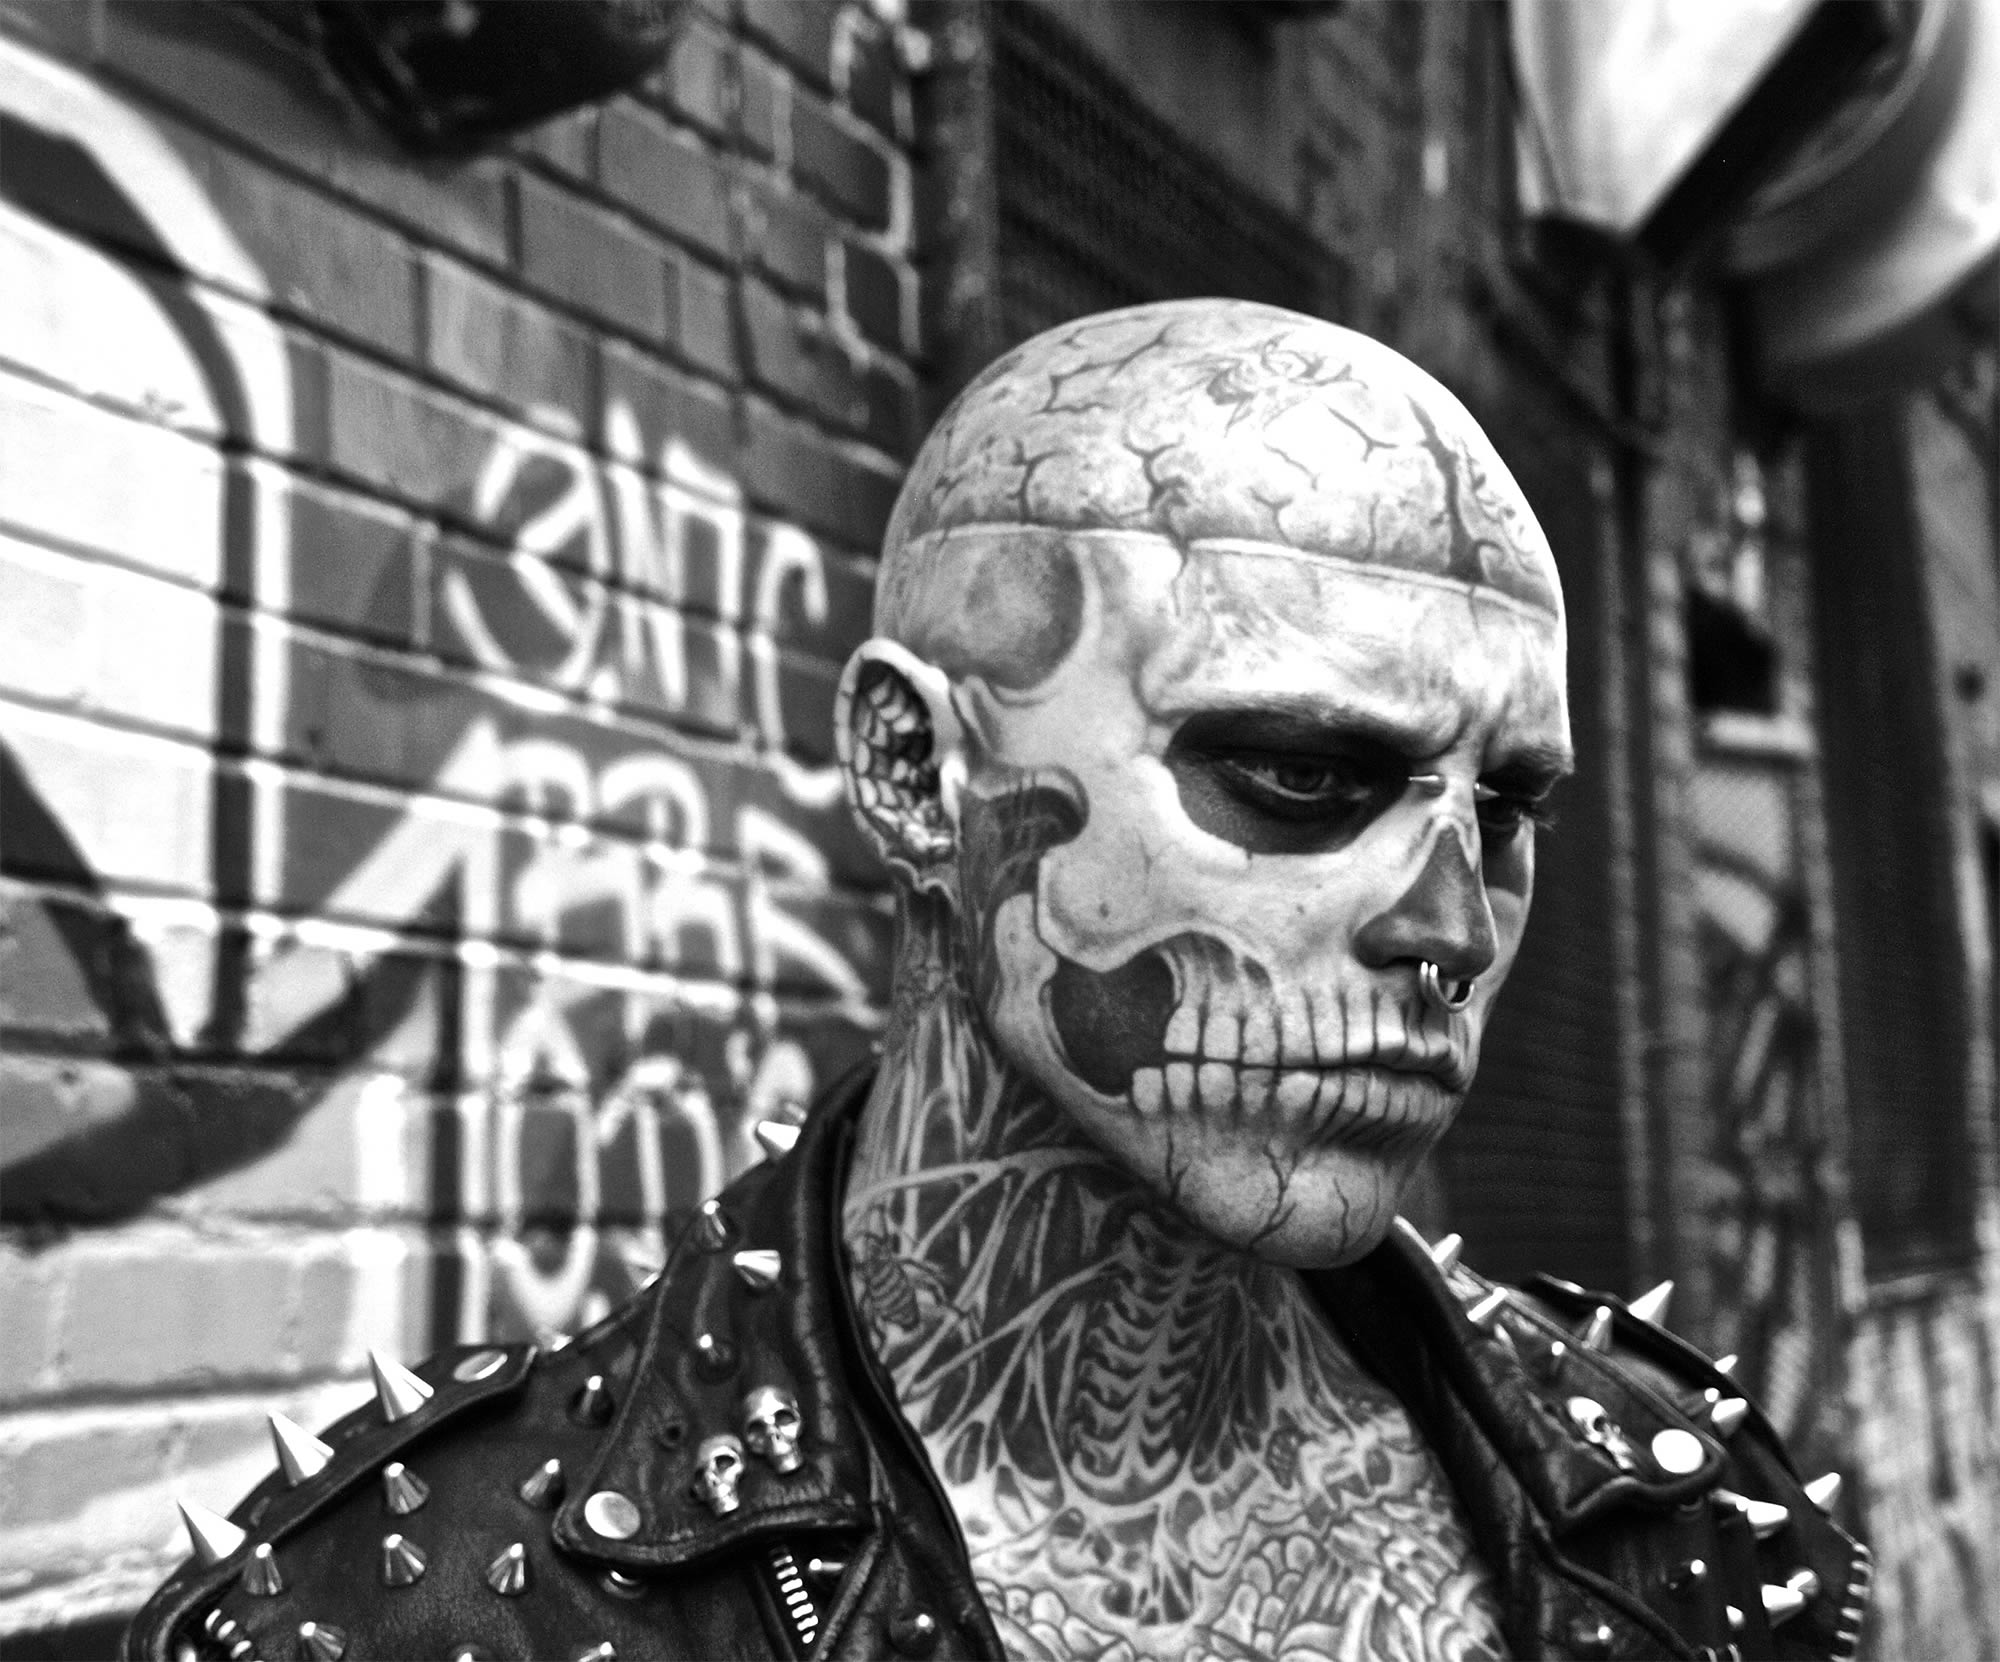 An Interview with the Extremely Tattooed Zombie Boy